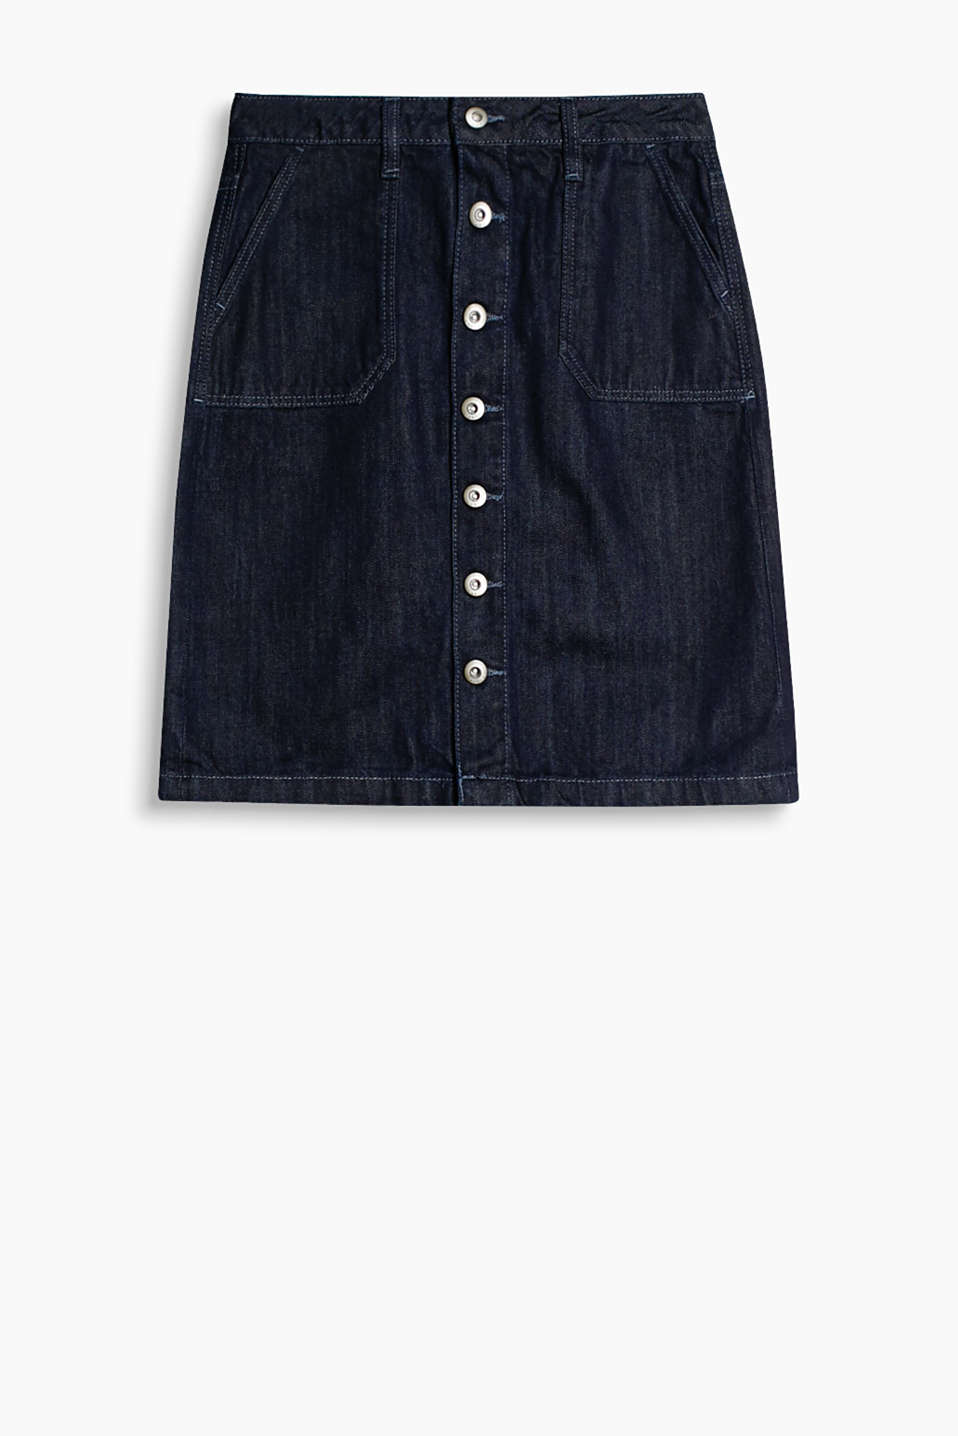 Dark blue denim skirt with button placket and patch pockets